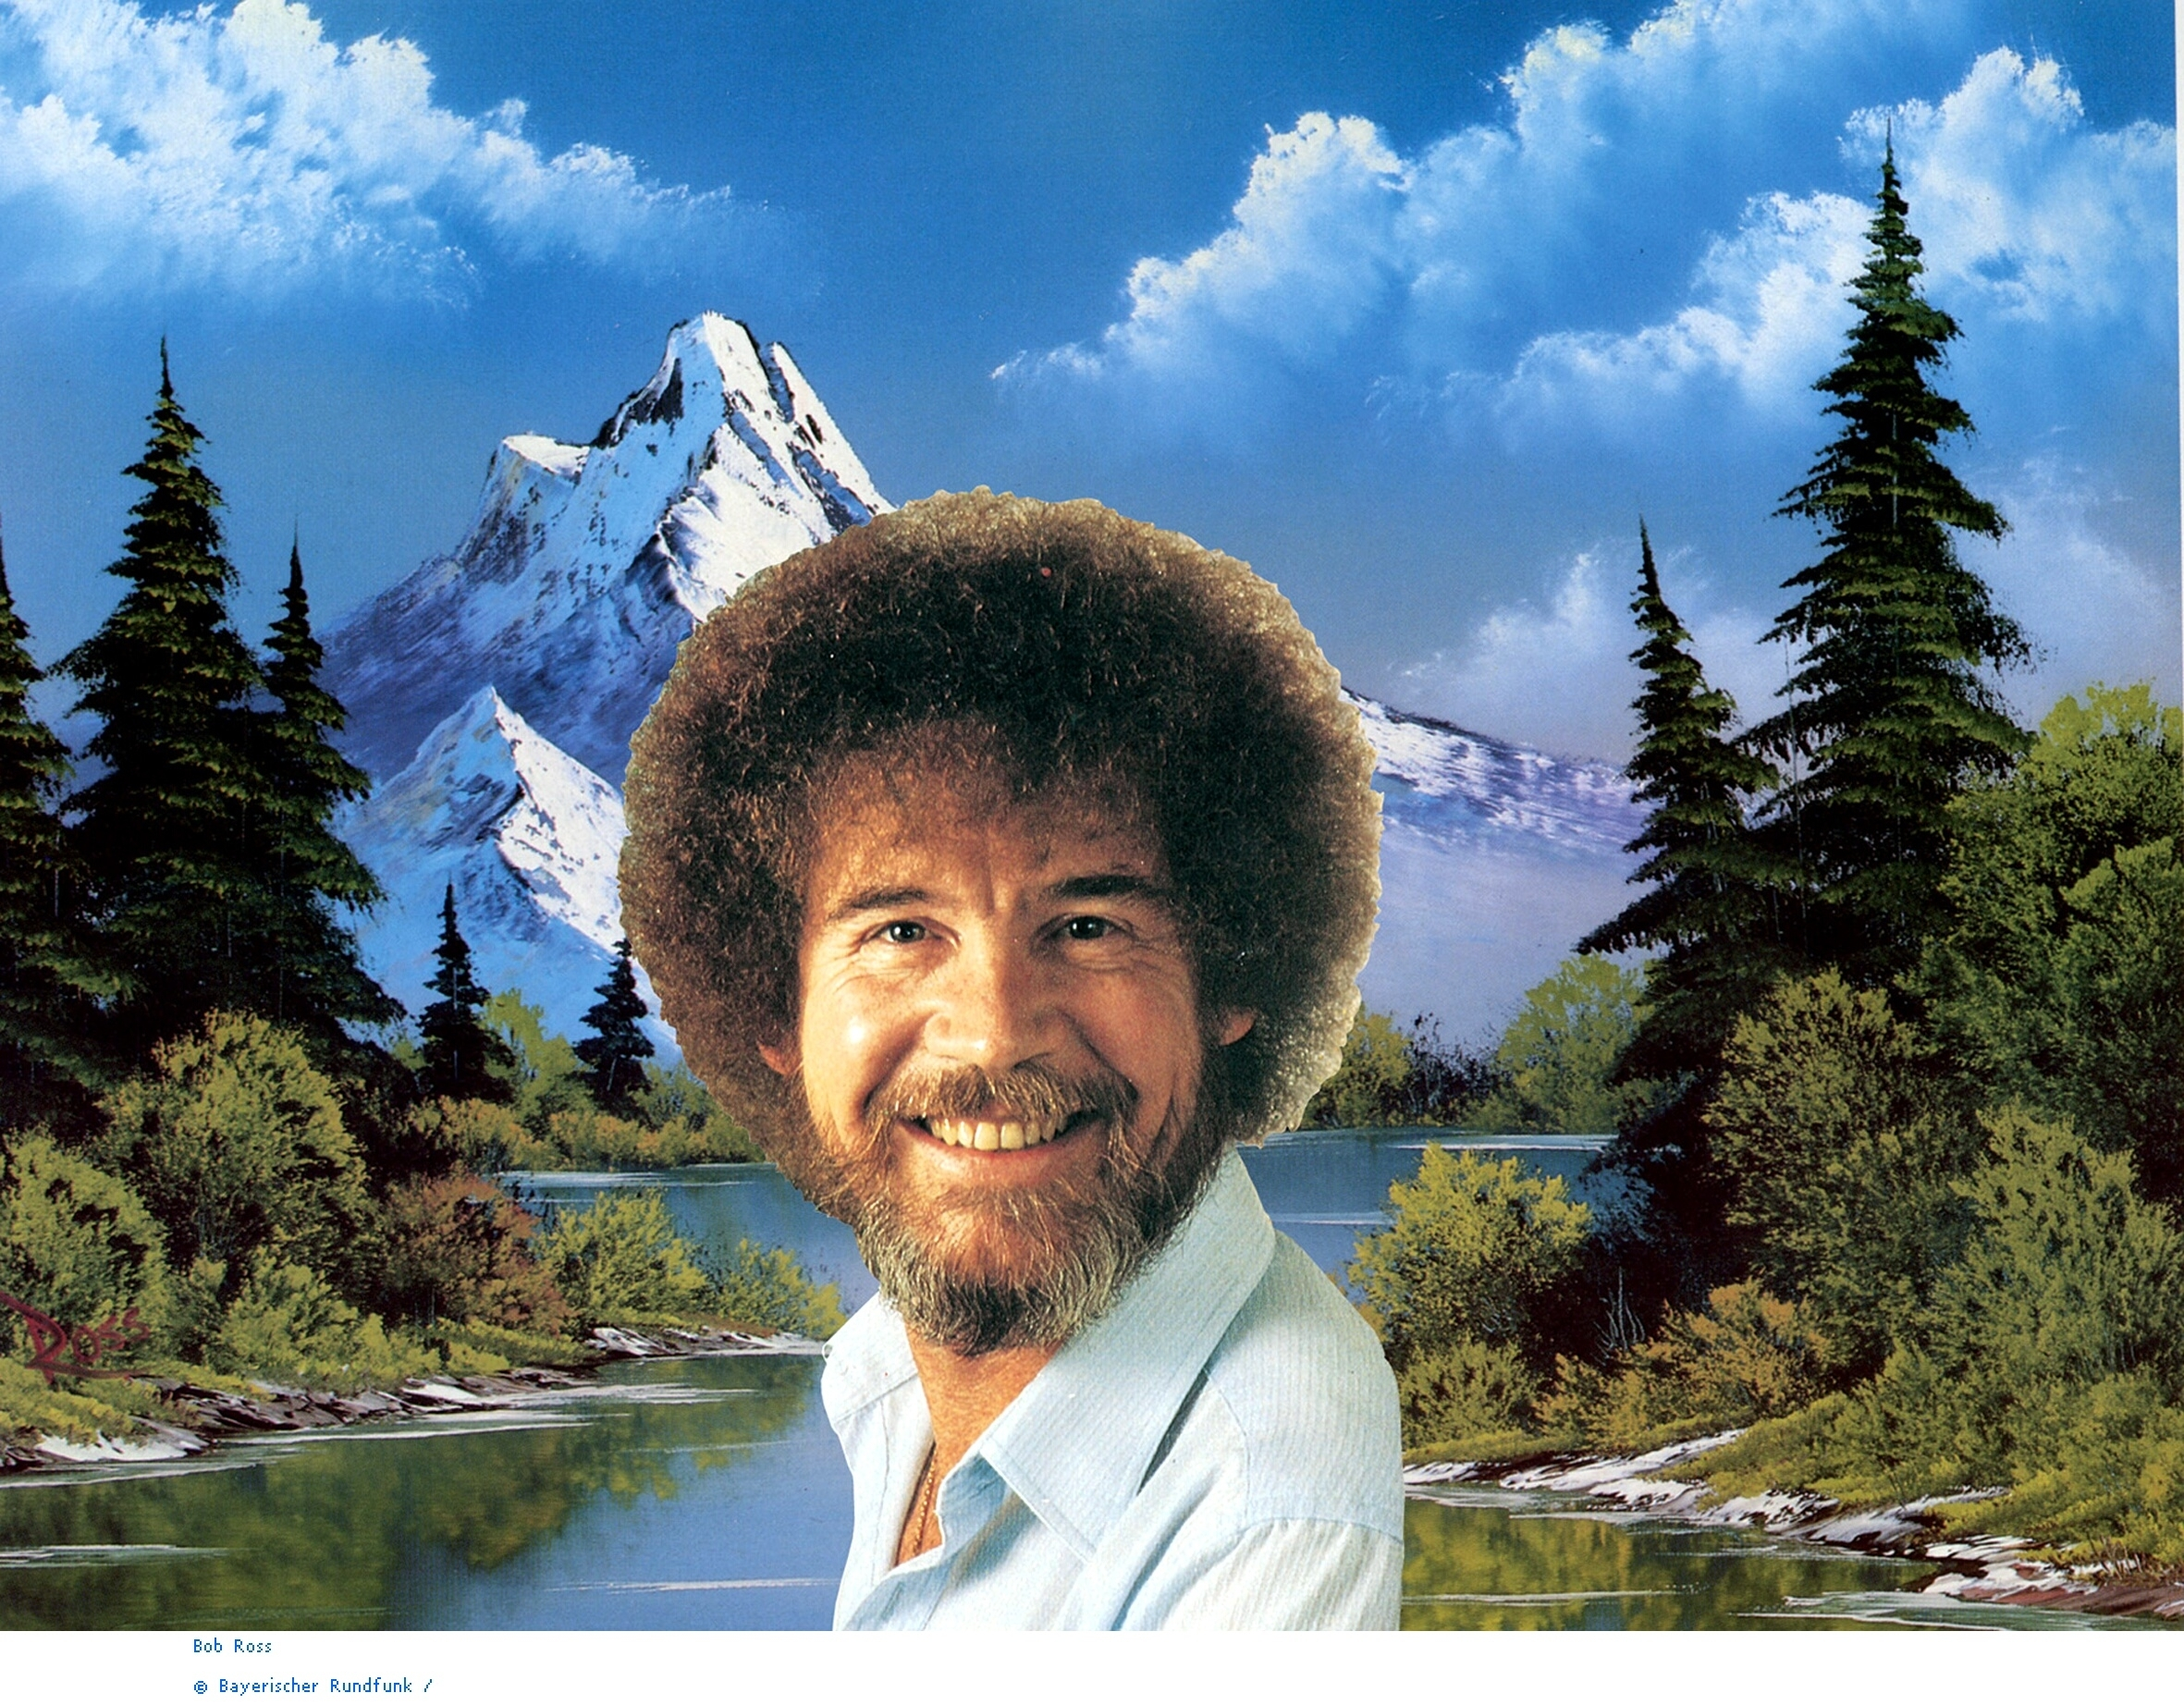 bob ross full hd wallpaper and background image | 2362x1844 | id:79722